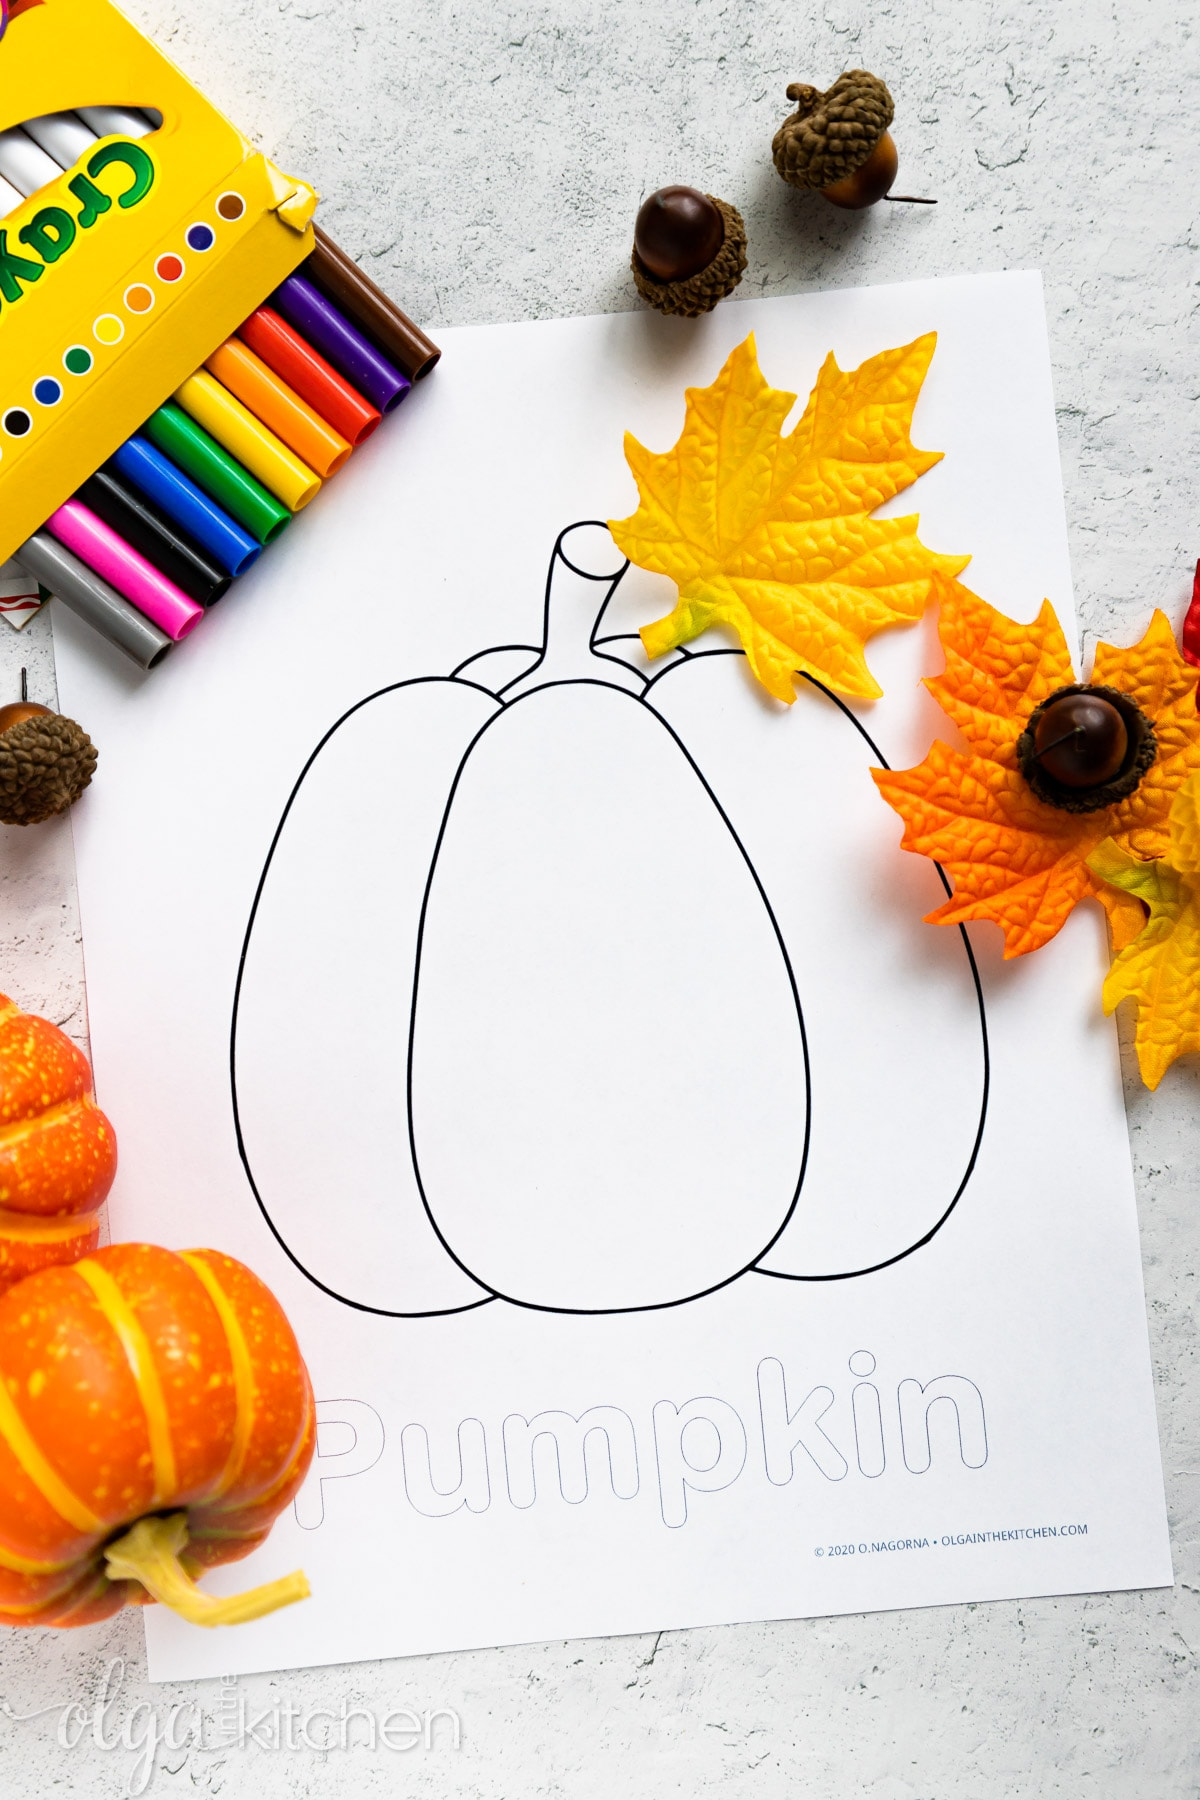 This FREE Pumpkin Coloring Page will keep your kids entertained during the autumn season. A simple activity for you and your kids to enjoy. Kids can use crayons, colored pencils, markers or paint to color the printable. #olgainthekitchen #printables #freeprintable #freebie #coloringpage #pumpkin #thanksgiving #crafts #kids #diy